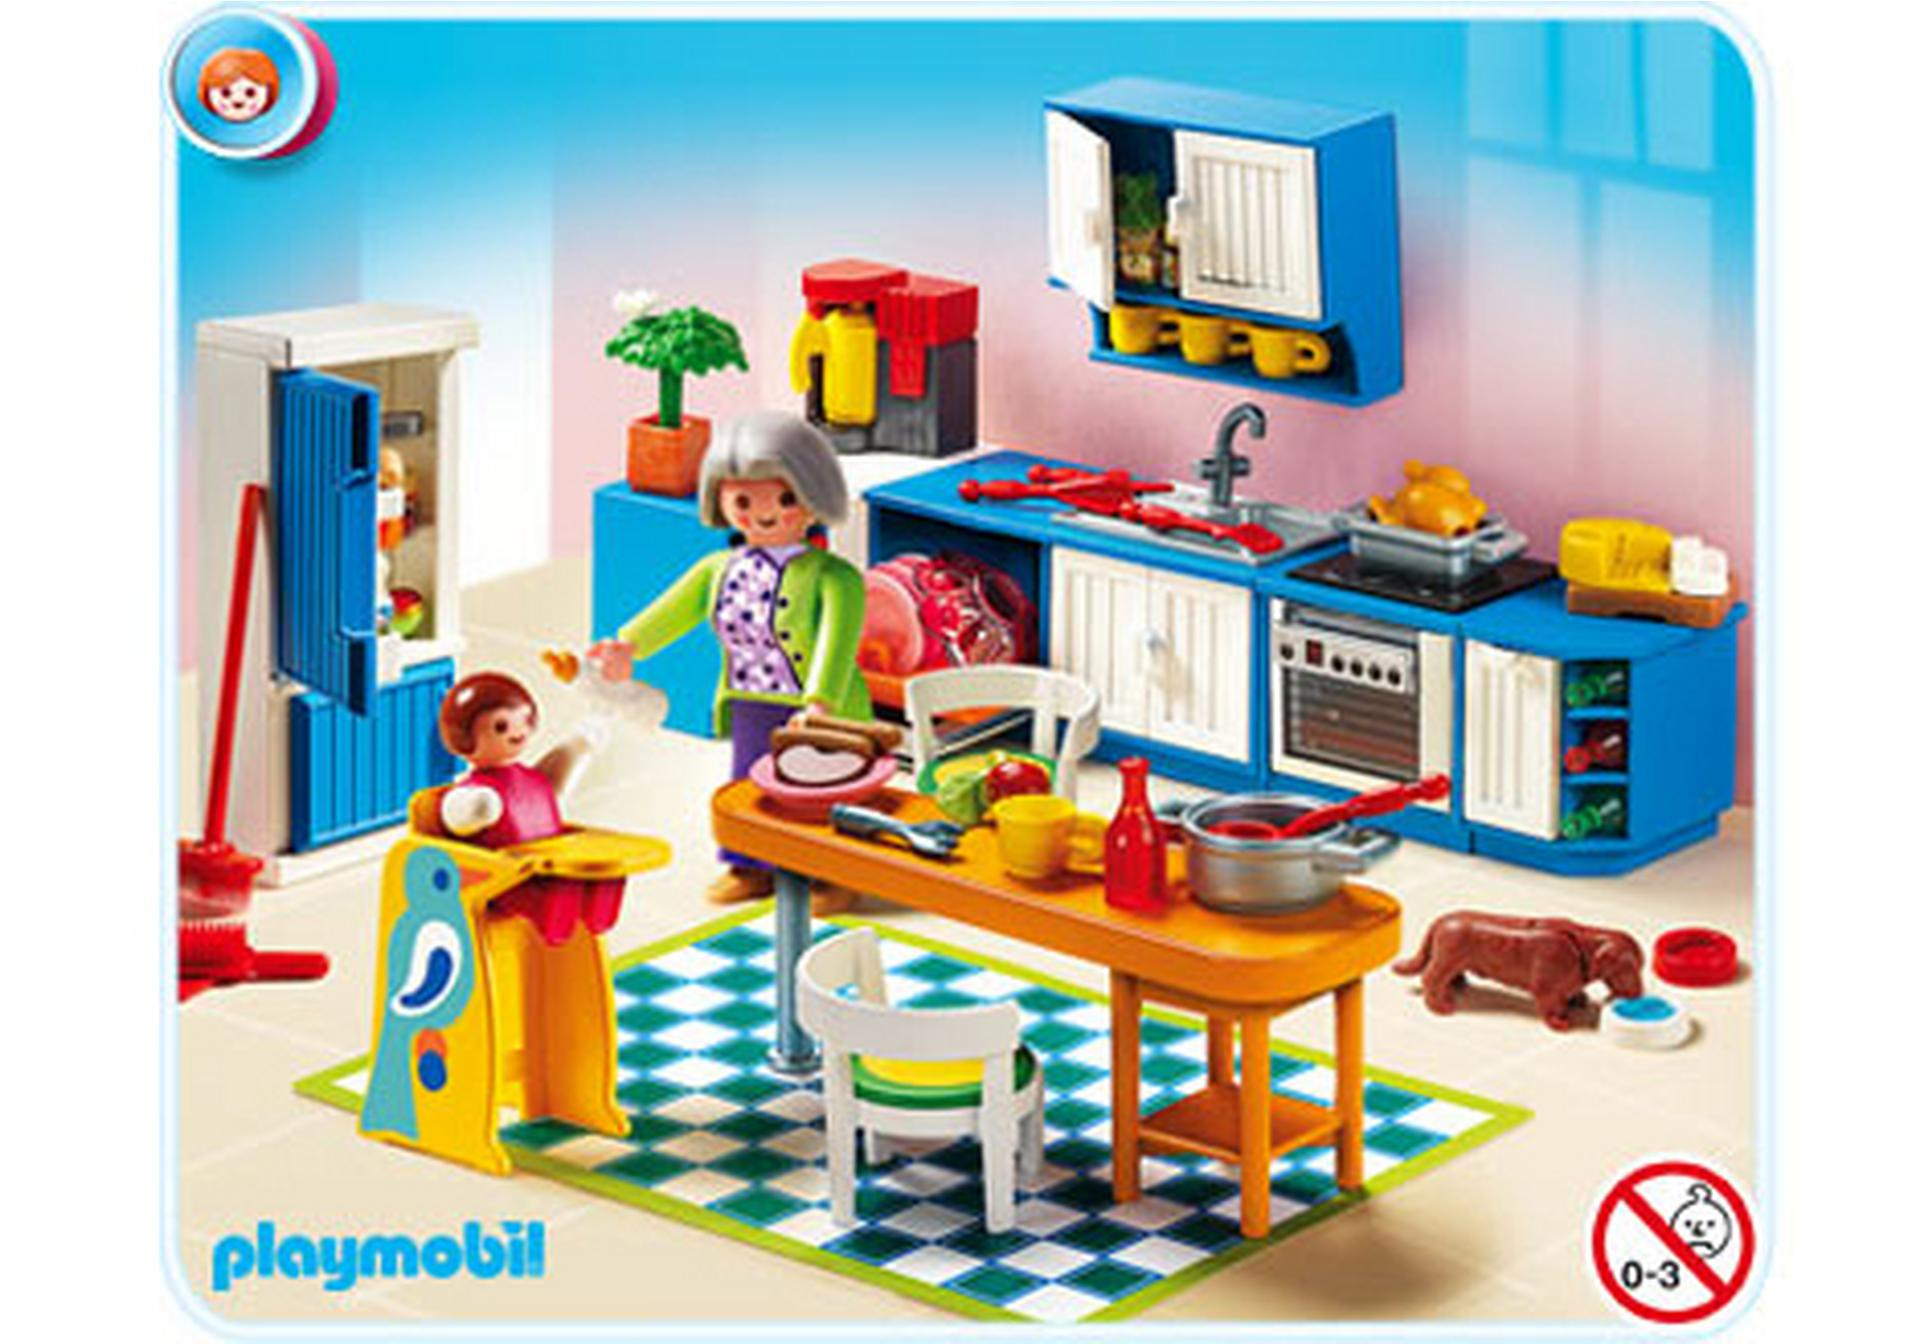 cuisine 5329 a playmobil france